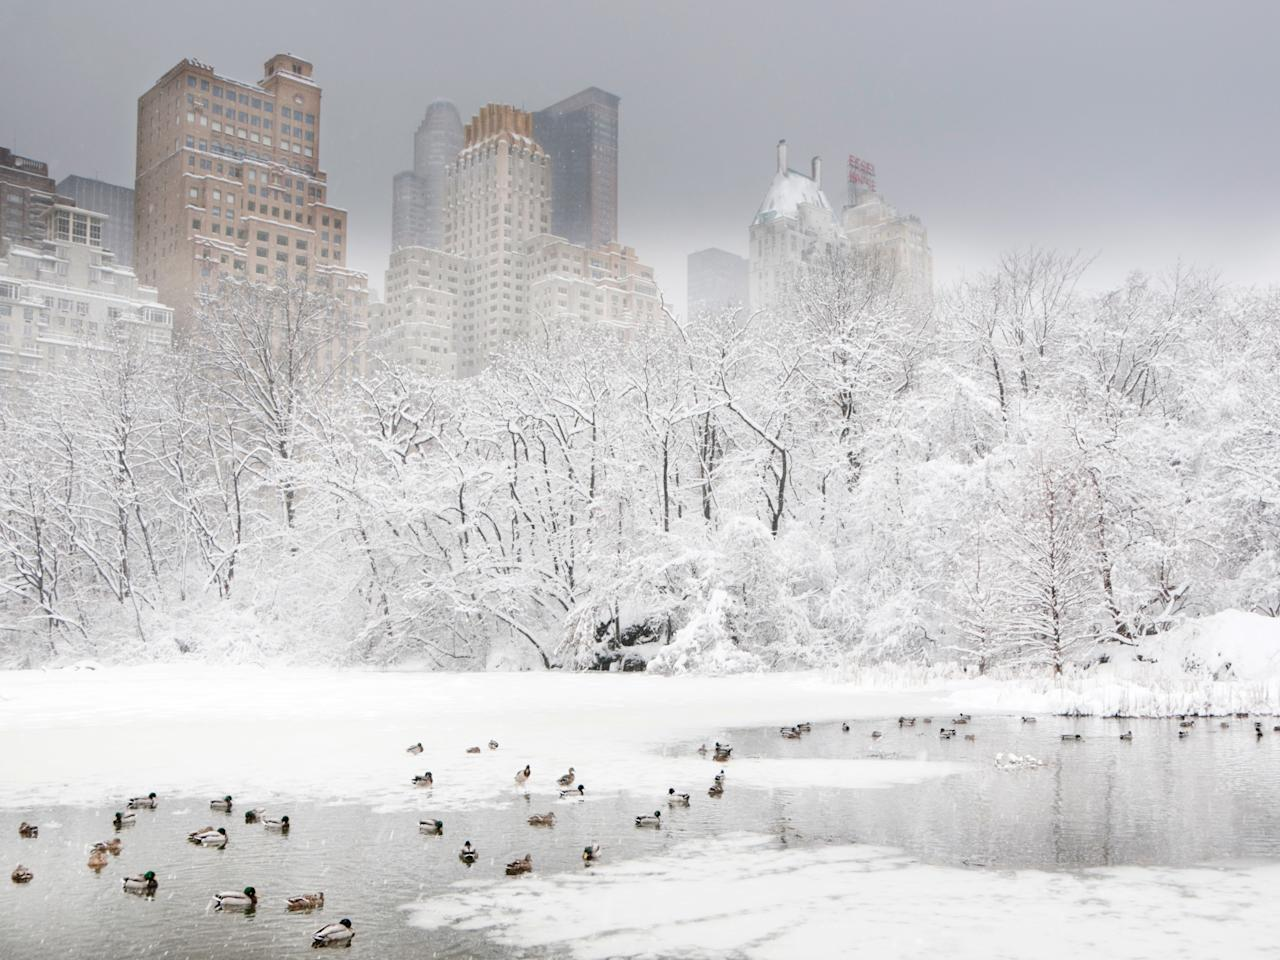 """<a rel=""""nofollow"""" href=""""https://www.cntraveler.com/reports/the-best-of-new-york-city?mbid=synd_yahoo_rss"""">New York City</a> is pretty magical every month of the year, and that certainly holds true during the winter (<a rel=""""nofollow"""" href=""""https://www.cntraveler.com/story/thanks-to-winter-storm-grayson-you-should-probably-change-your-flight?mbid=synd_yahoo_rss"""">bomb cyclones</a> notwithstanding). The city has tons of indoor activities to keep you busy, whether it's watching basketball games at Barclays, visiting the butterfly conservatory at the American Museum of Natural History (open December through May), or sipping hot chocolate at <a rel=""""nofollow"""" href=""""https://www.cntraveler.com/galleries/2016-03-23/where-to-find-the-best-chocolate-in-the-world/?mbid=synd_yahoo_rss"""">Jacques Torres</a>. And nothing screams """"winter wonderland"""" like Central Park under a fresh layer of snow, with carriage rides, ice skating rinks, and idyllic paths and bridges just begging to be <a rel=""""nofollow"""" href=""""https://www.cntraveler.com/story/the-most-instagrammed-cities-of-2017?mbid=synd_yahoo_rss"""">Instagrammed</a>. Bonus: You can find much more affordable hotel rates after the holiday rush dies down."""